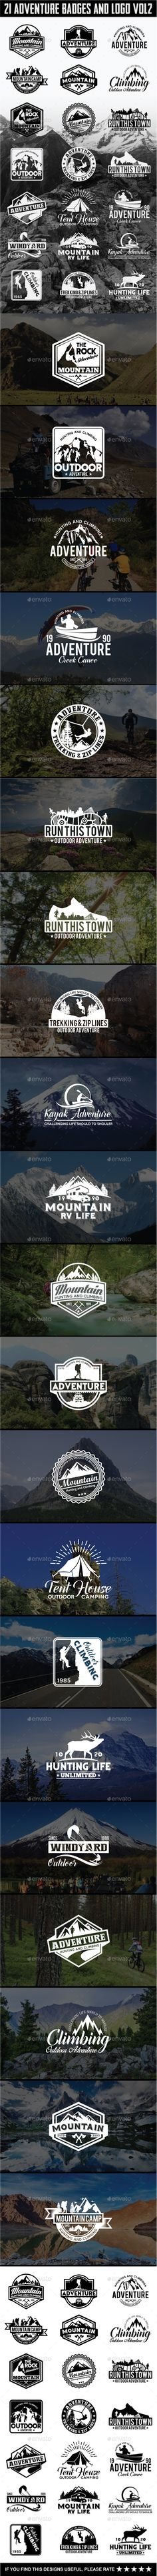 21 Adventure Badges and Logo Vol2 - Badges & Stickers Web Elements